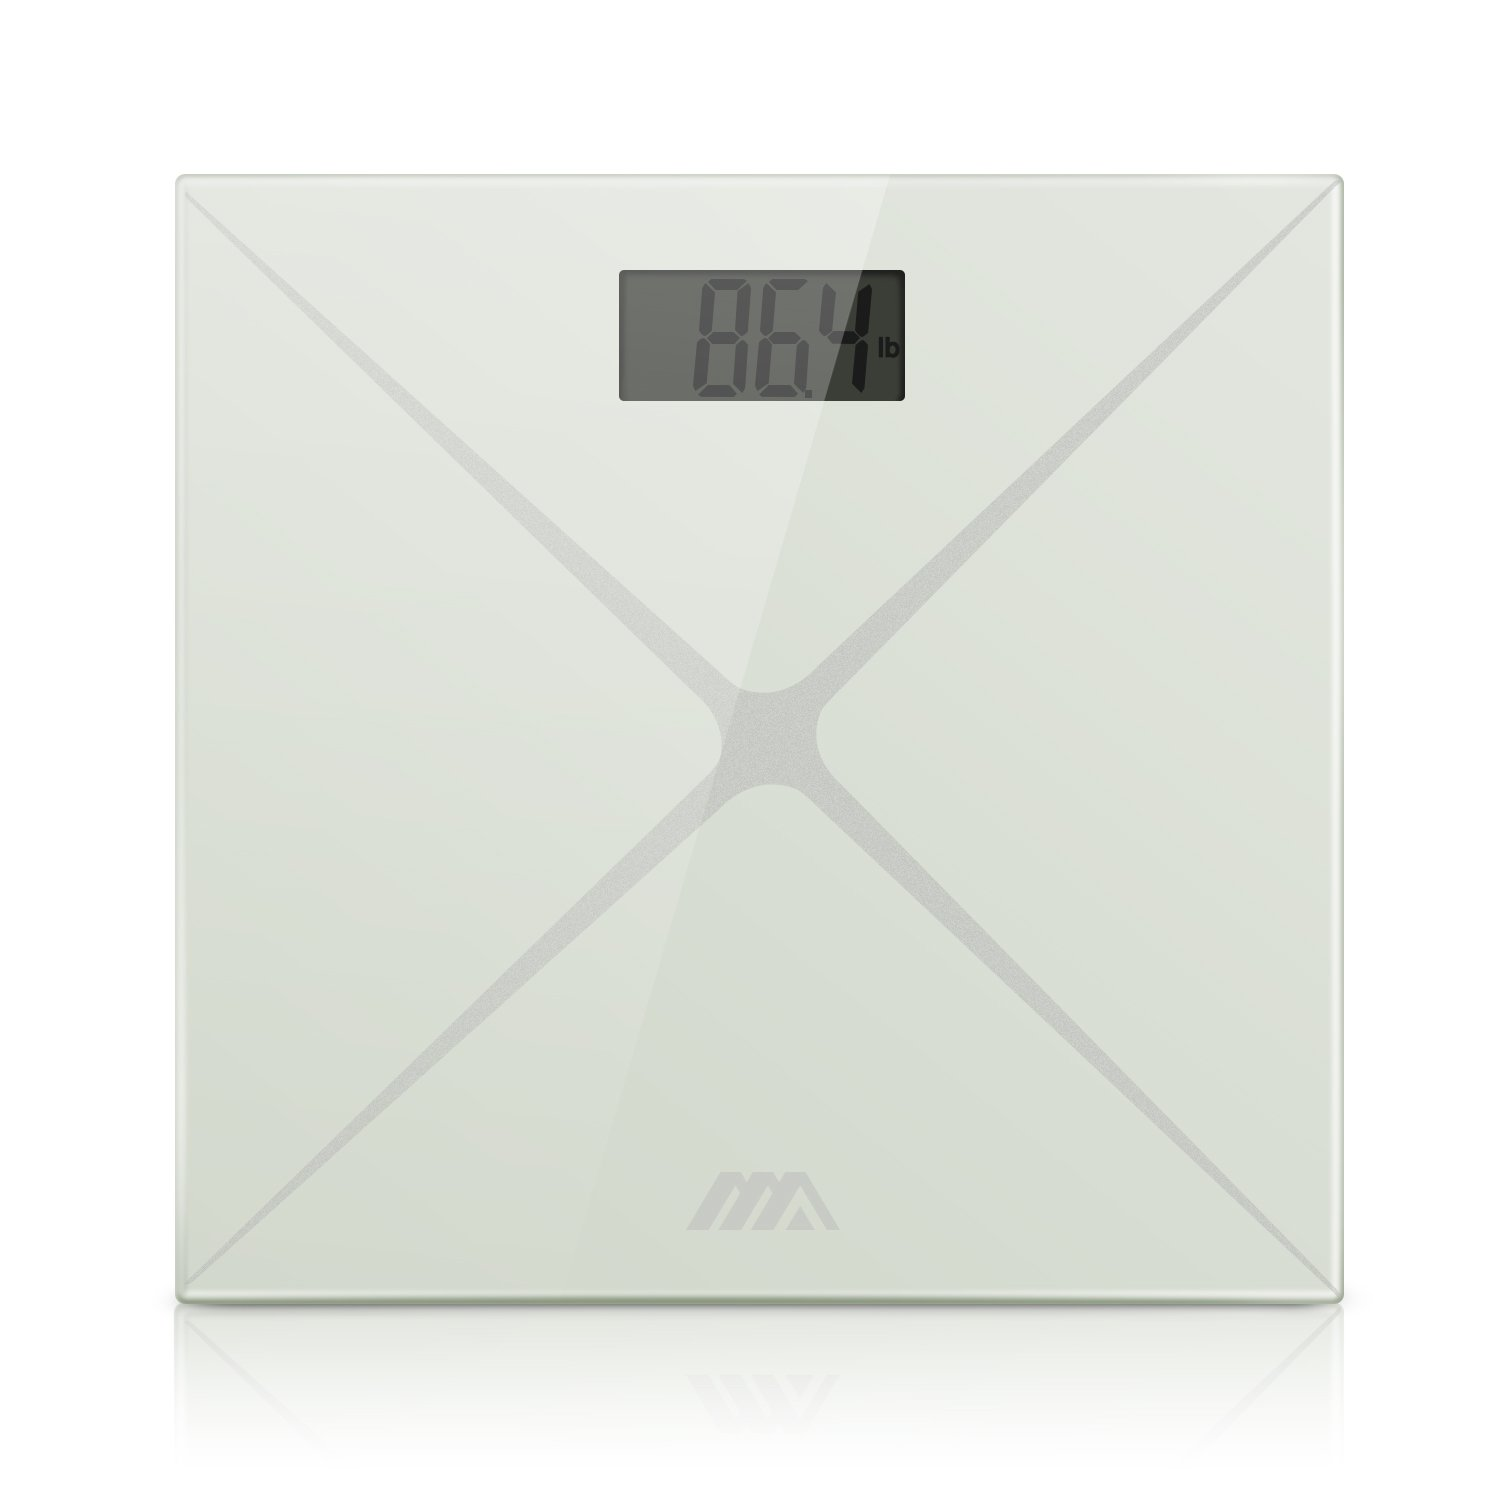 Adoric Digital Body Weight Bathroom Scale, Step-On Technology, Tempered Glass, Large LED Display, Easy to Read and Accurate Weight